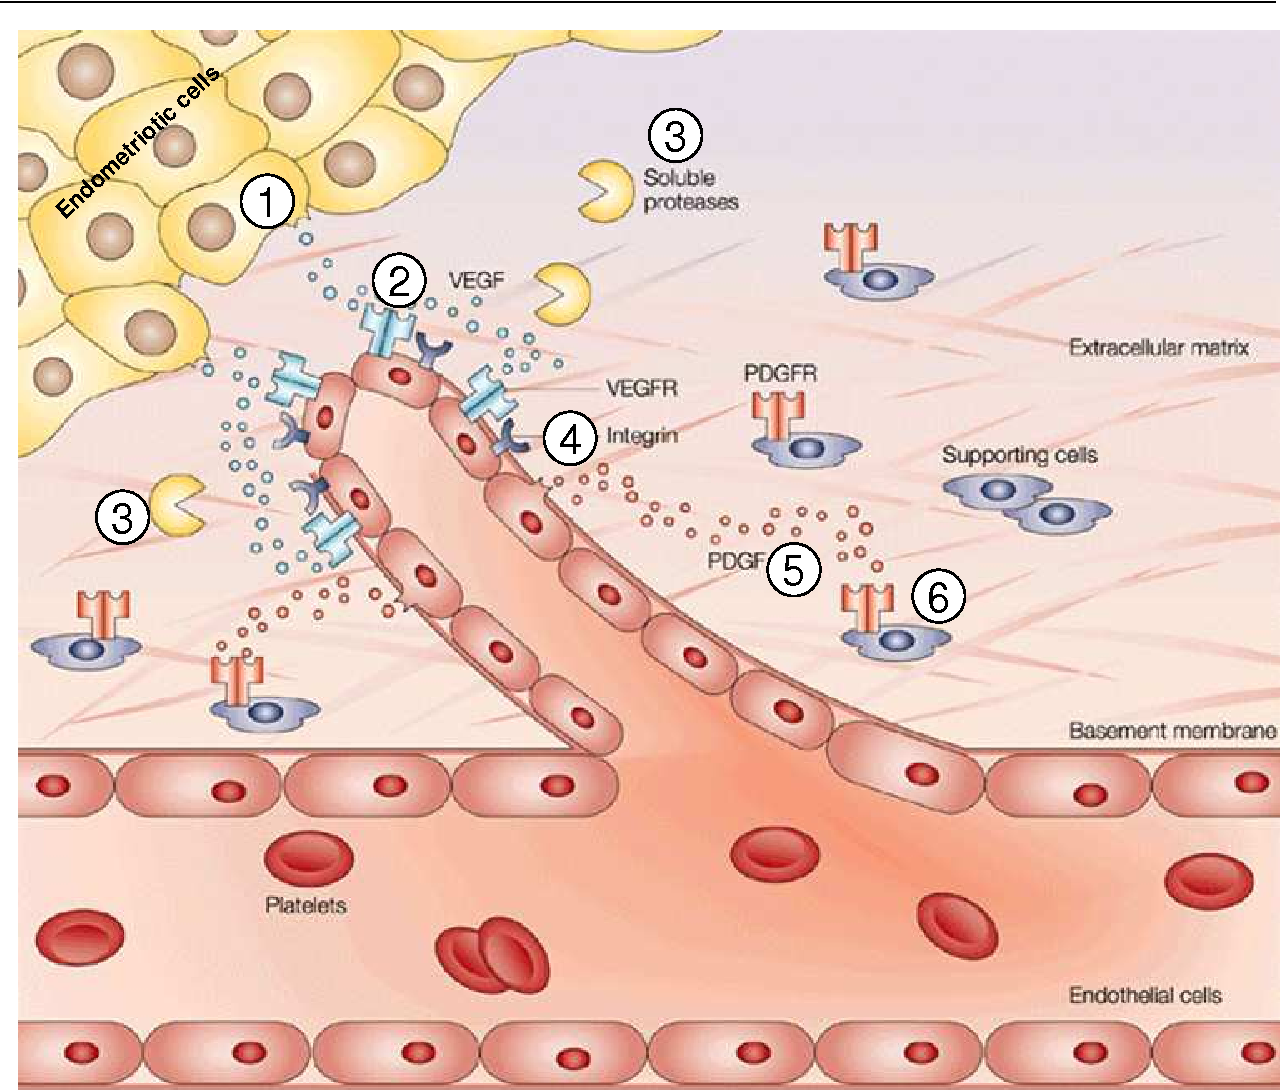 Figure 5: Hypothetical depiction of angiogenesis processes in endometriosis. (1) Endometriotic cells are proposed to release pro-angiogenic factors, such as vascular endothelial growth factor (VEGF), which diffuse into nearby tissues and (2) bind to receptors on the endothelial cells of preexisting blood vessels, leading to their activation. Such interactions between endothelial cells and endometriotic cells lead to the secretion and activation of various proteolytic enzymes, (3) such as matrix metalloproteinases (MMPs), which degrade the basement membrane of vessels and the extracellular matrix. Degradation allows activated endothelial cells to migrate towards the endometriotic cells. (4) Integrin molecules help to pull the sprouting new blood vessel forward. The endothelial cells deposit a new basement membrane and secrete growth factors, (5) such as platelet-derived growth factor (PDGF), which attract (6) supporting cells to stabilise the new vessel. PDGFR = PDGF receptor; VEGFR = VEGF receptor (modified after Cristofanilli et al., 2002)